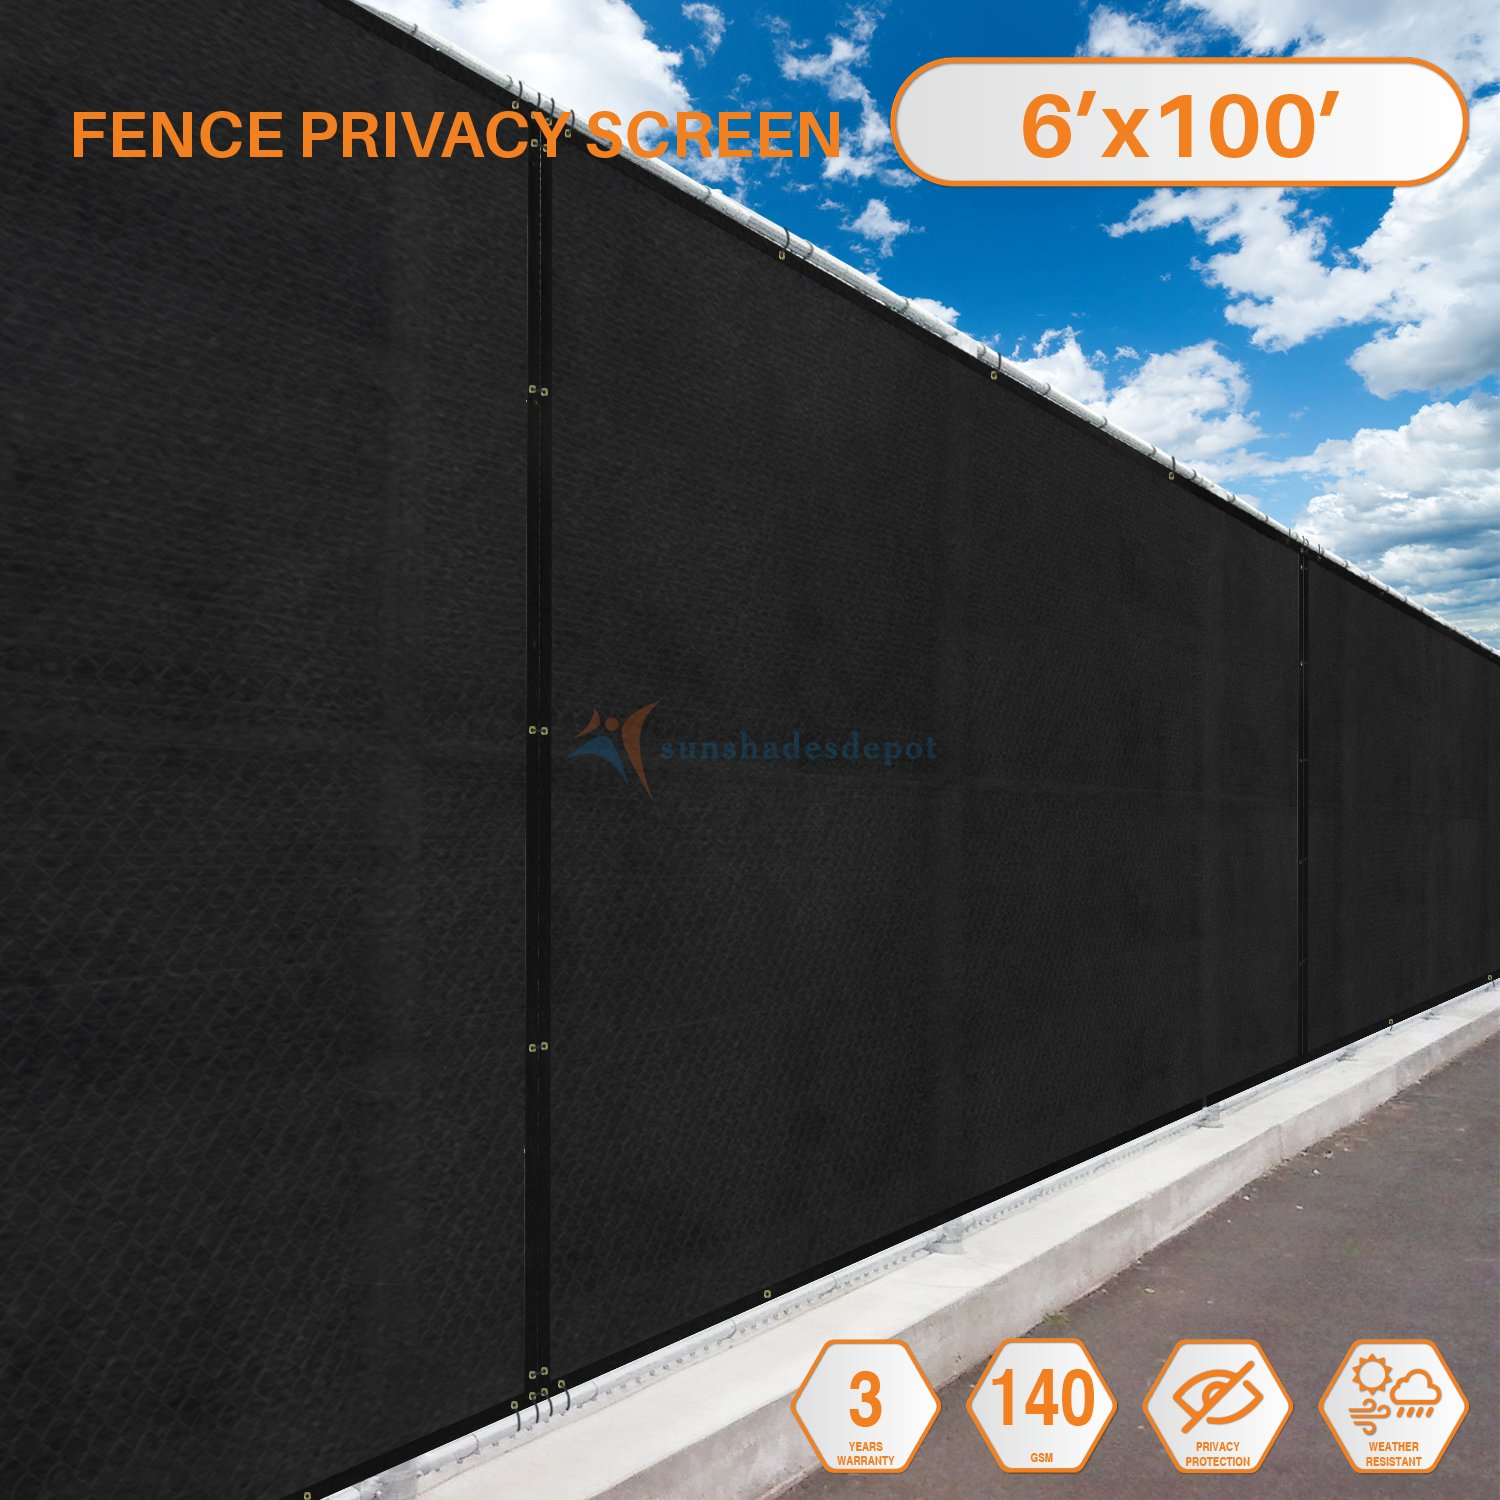 Sunshades Depot 6' FT x 100' FT 0'x6' Black Residential & Commercial Privacy Fence Screen Custom Available 3 Years Warranty 140 GSM 88% Blockage